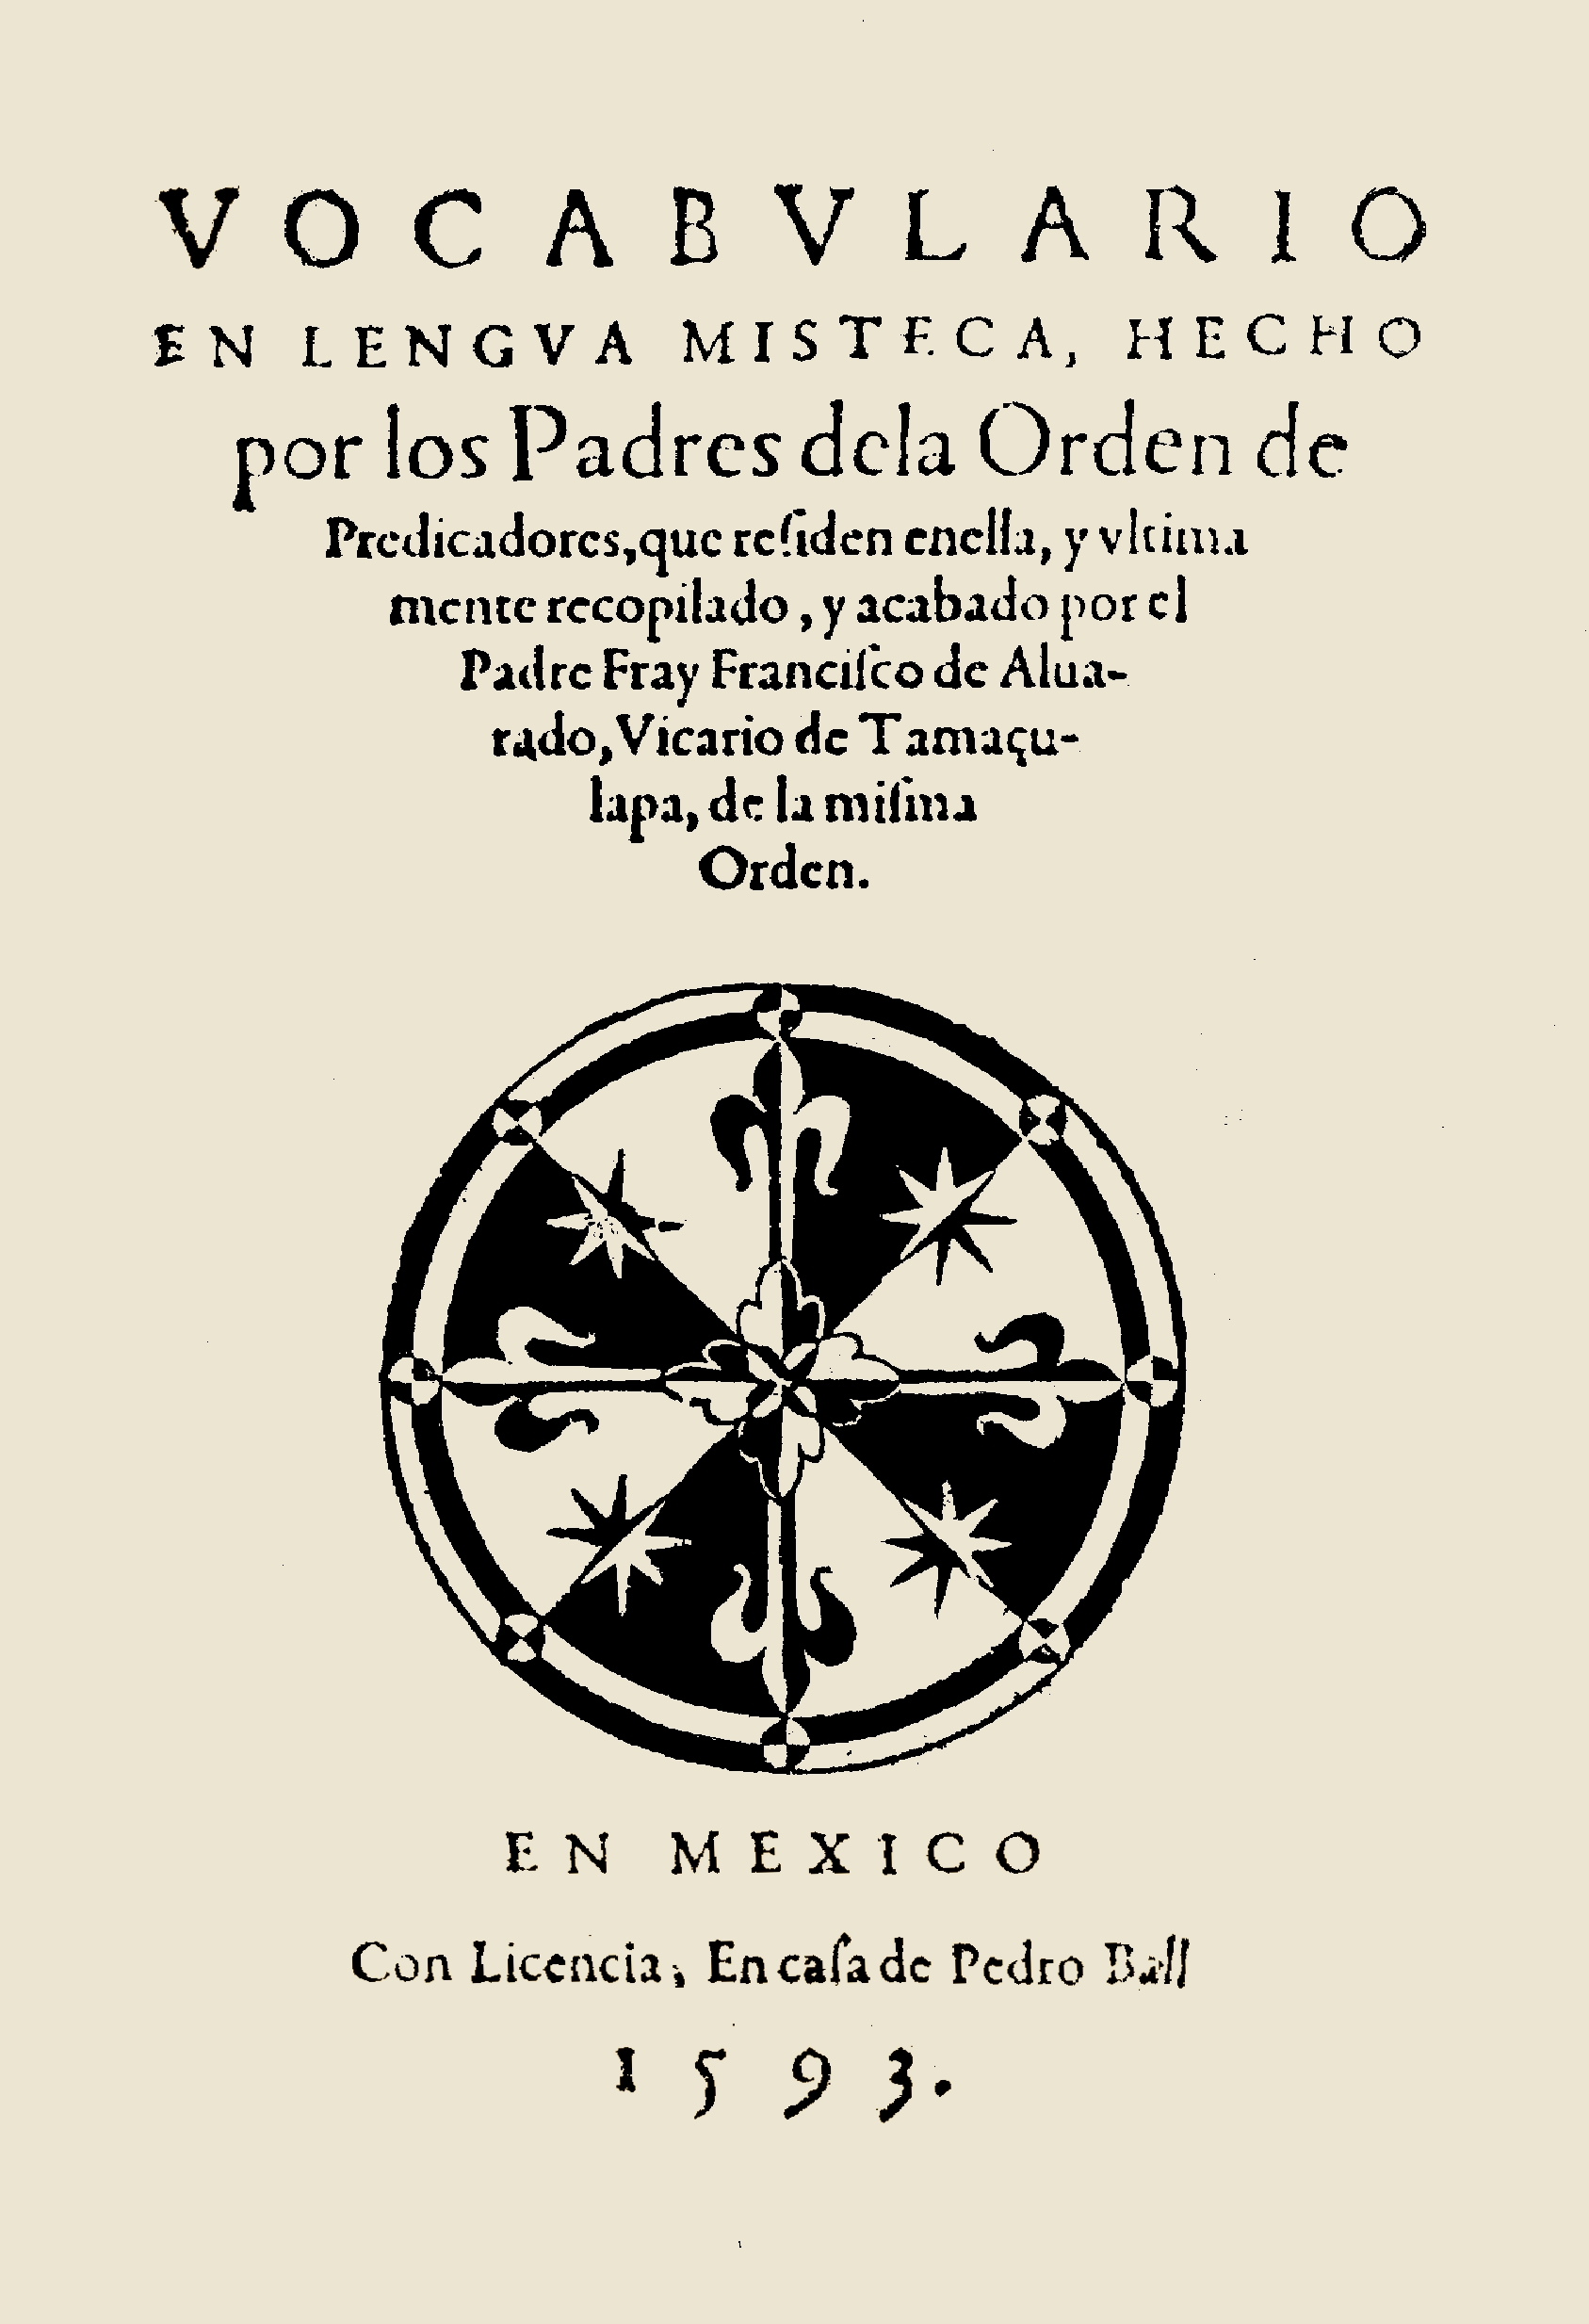 FIGURE 1. Cover page of Francisco de Alvarado's 1593 _Vocabulario en Lengua Mixteca_.